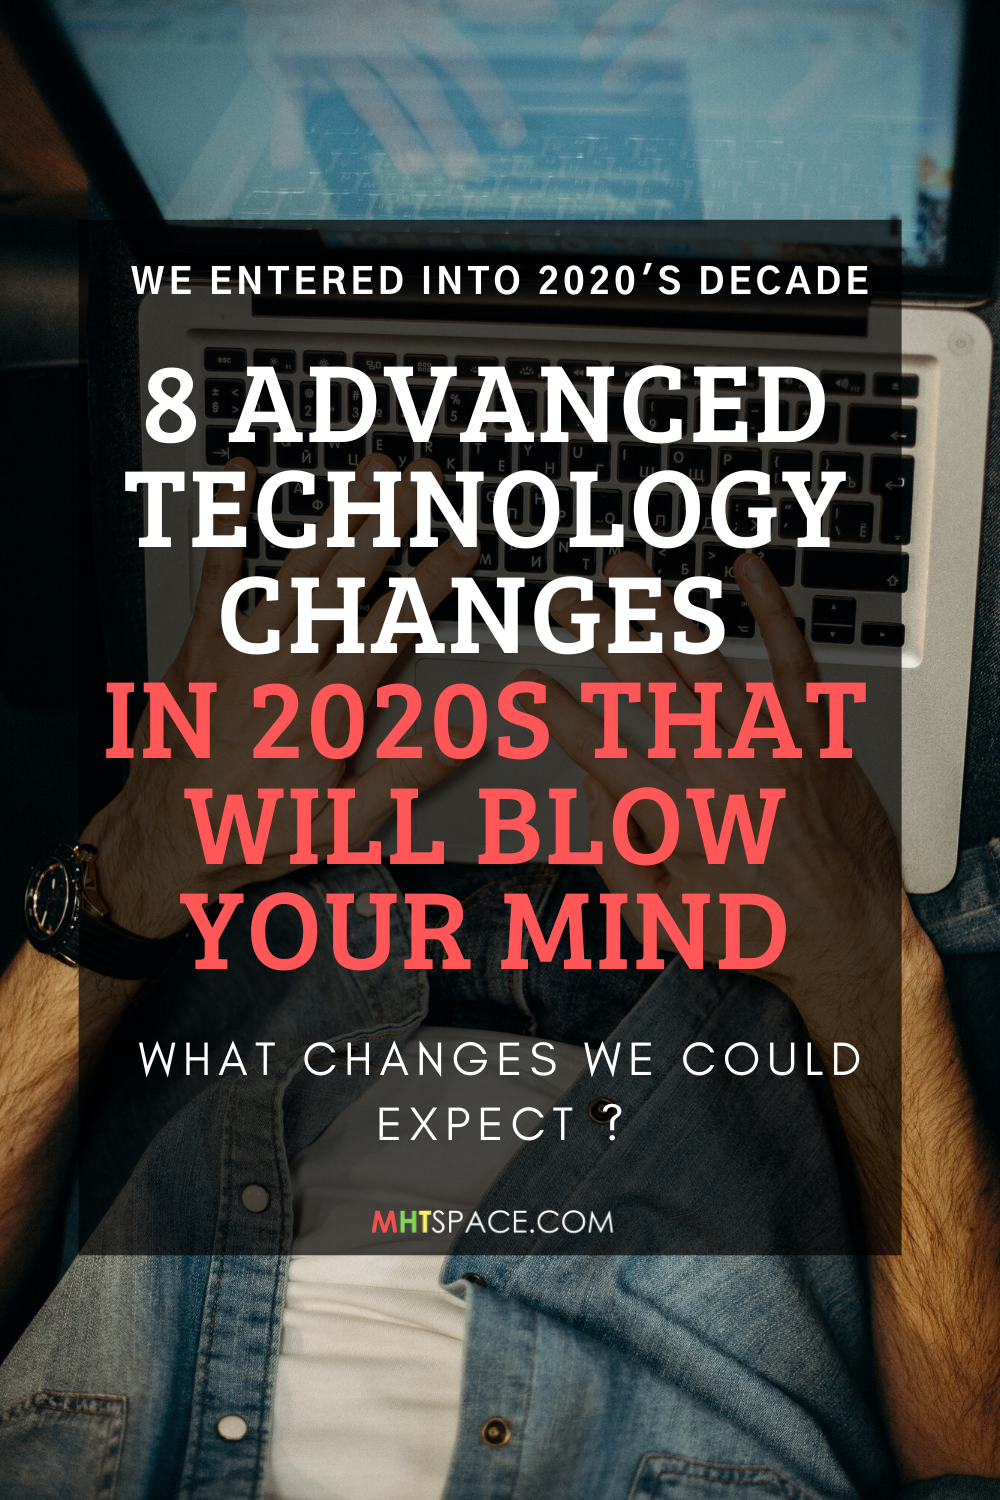 It's 2020 the future. Wanna know what changes are gonna be ? Check out the list of 8 Advanced Technology Changes made in 2020s that will blow your Mind. #tech #technology #5gnetwork #space #ai #aritificalintelligence #autonomousvehicles #blockchaintech #blockchain #internetofthings #solaepower #solarpanel #solarenergy #cureforaids #aids #cancer